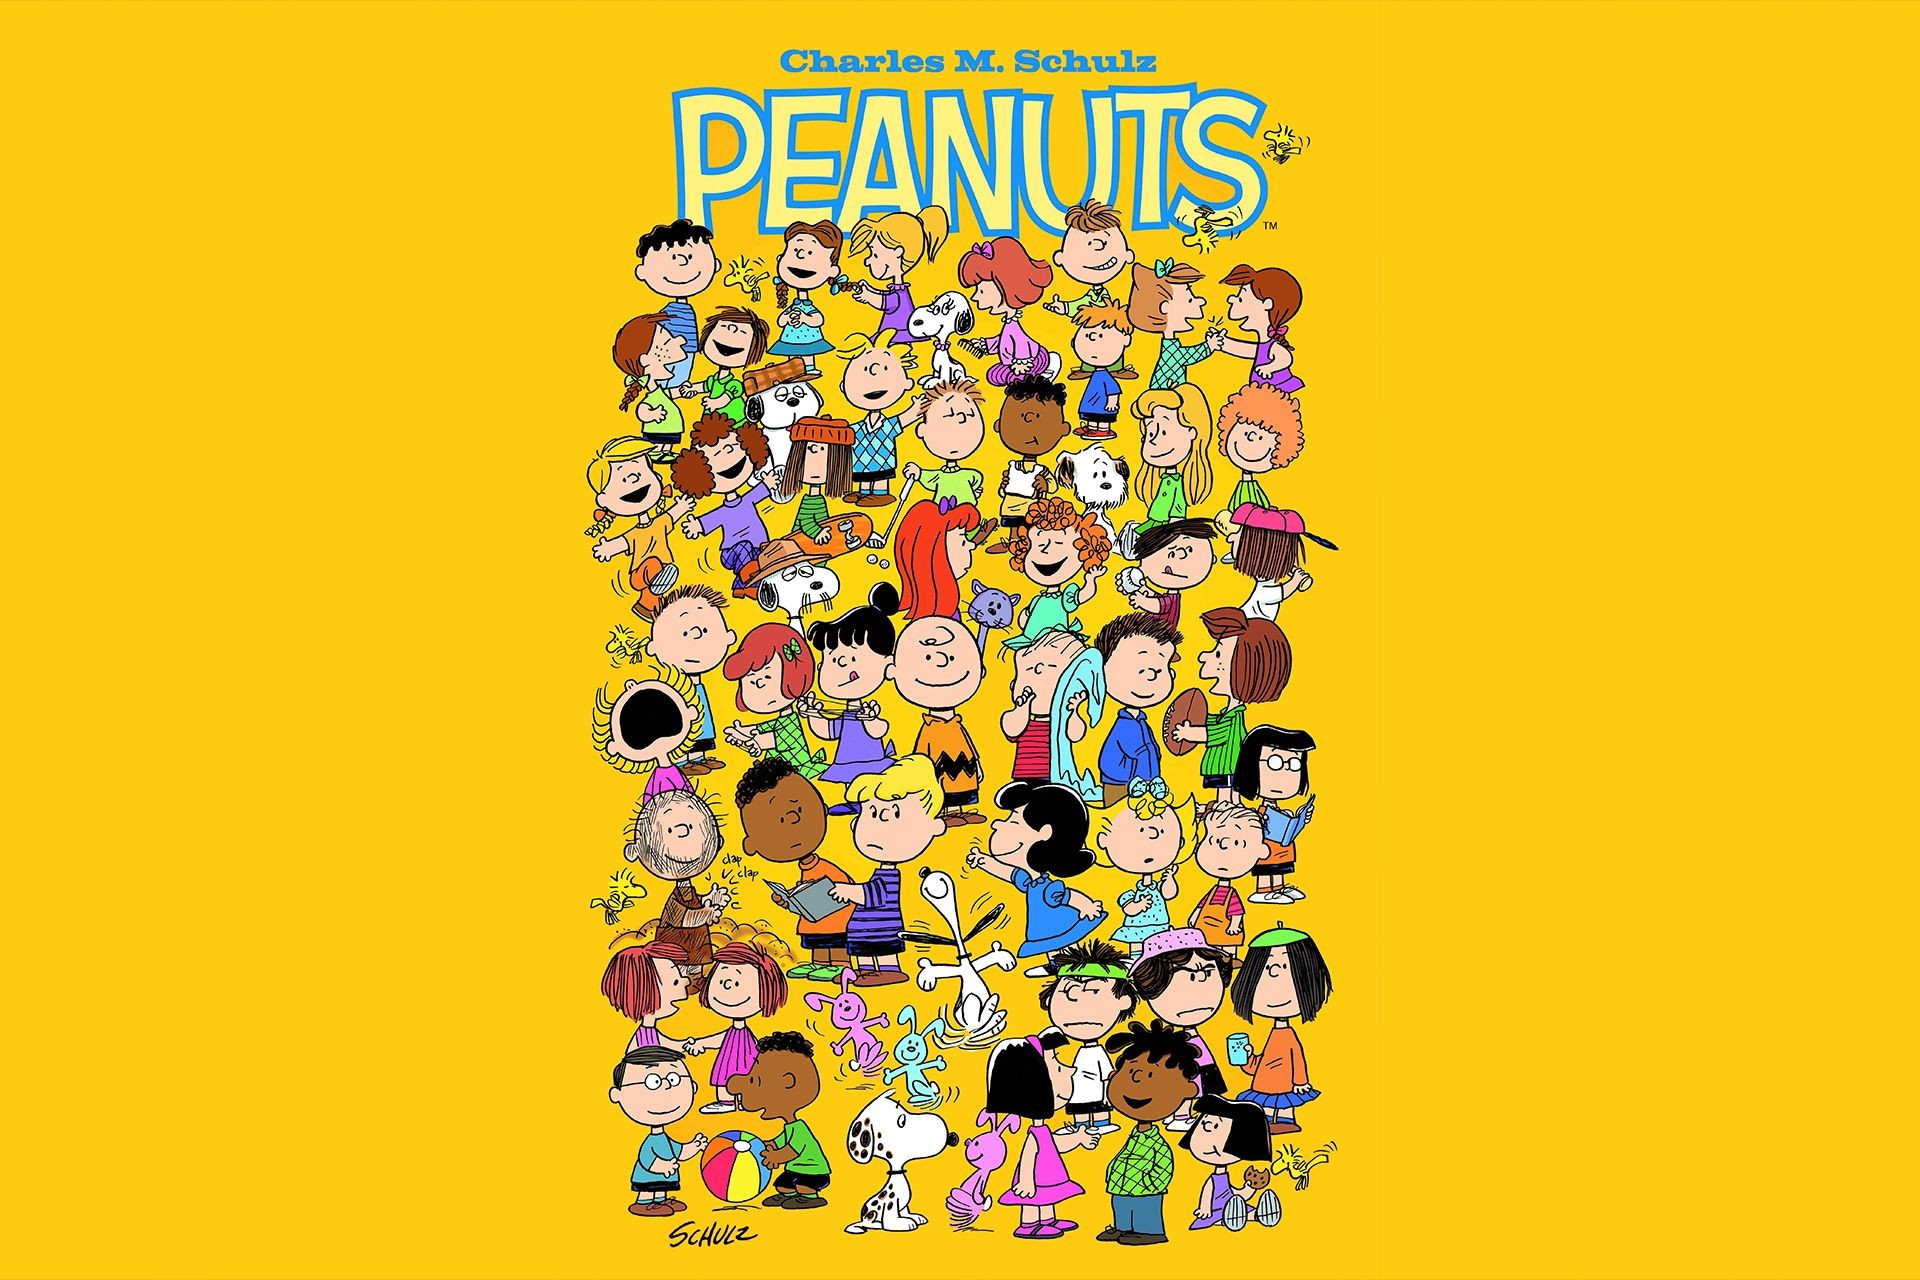 295 Best Peanuts Gang iPhone Wallpaper images | Snoopy ... |Peanuts Phone Wallpaper